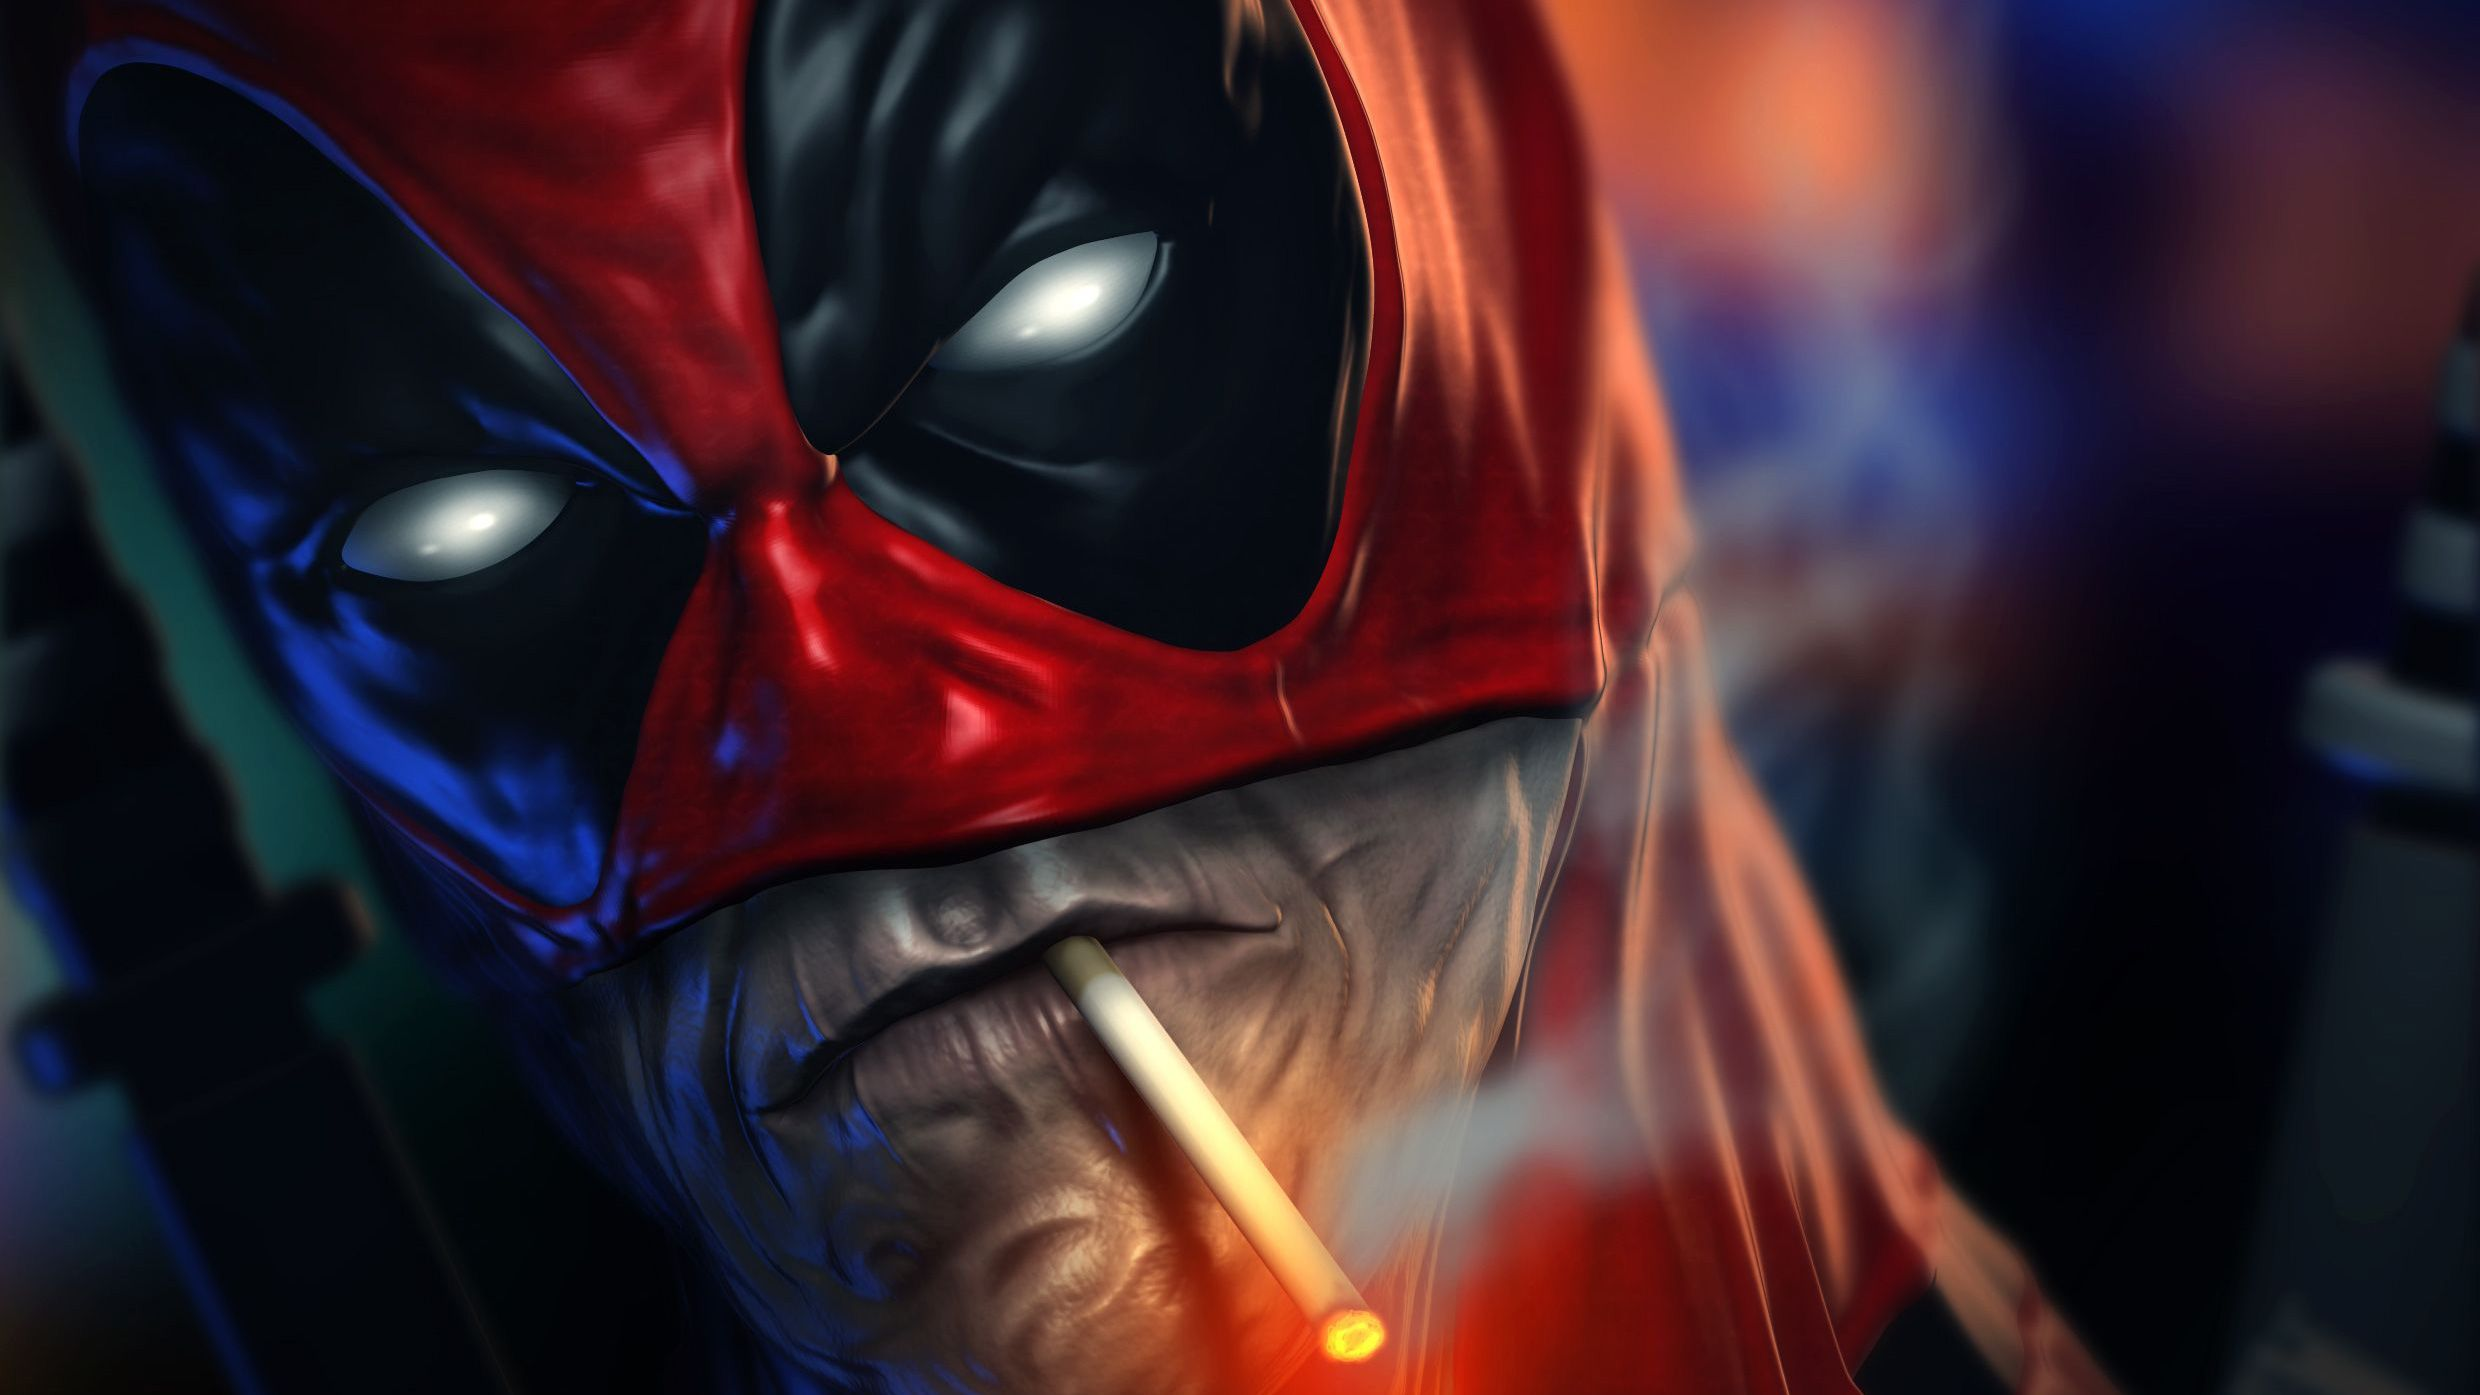 2480x1395 Deadpool Smoking Cigarette, HD Superheroes, 4k Wallpapers ...